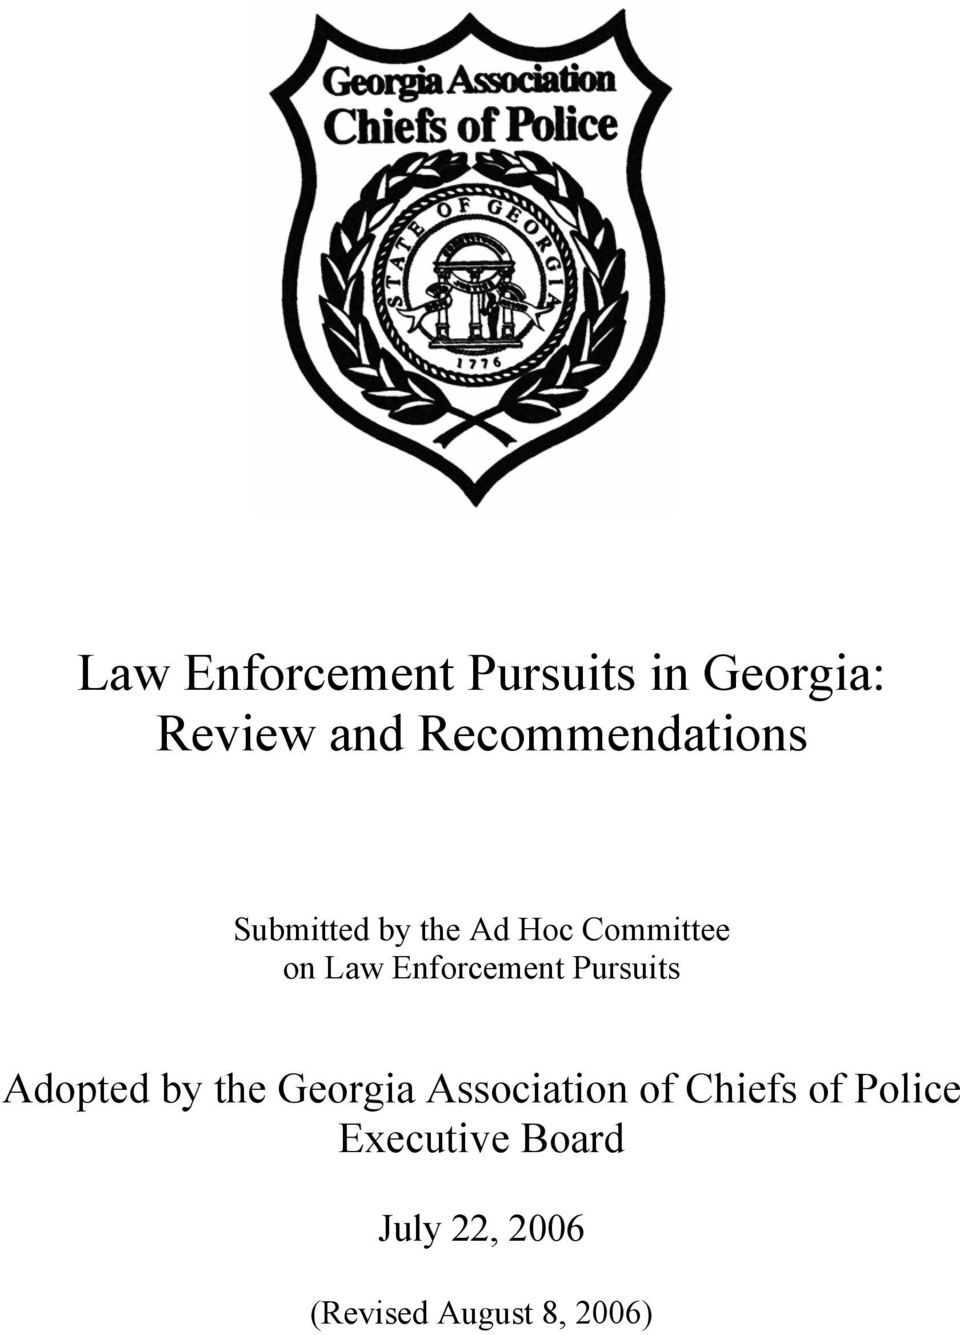 Enforcement Pursuits Adopted by the Georgia Association of